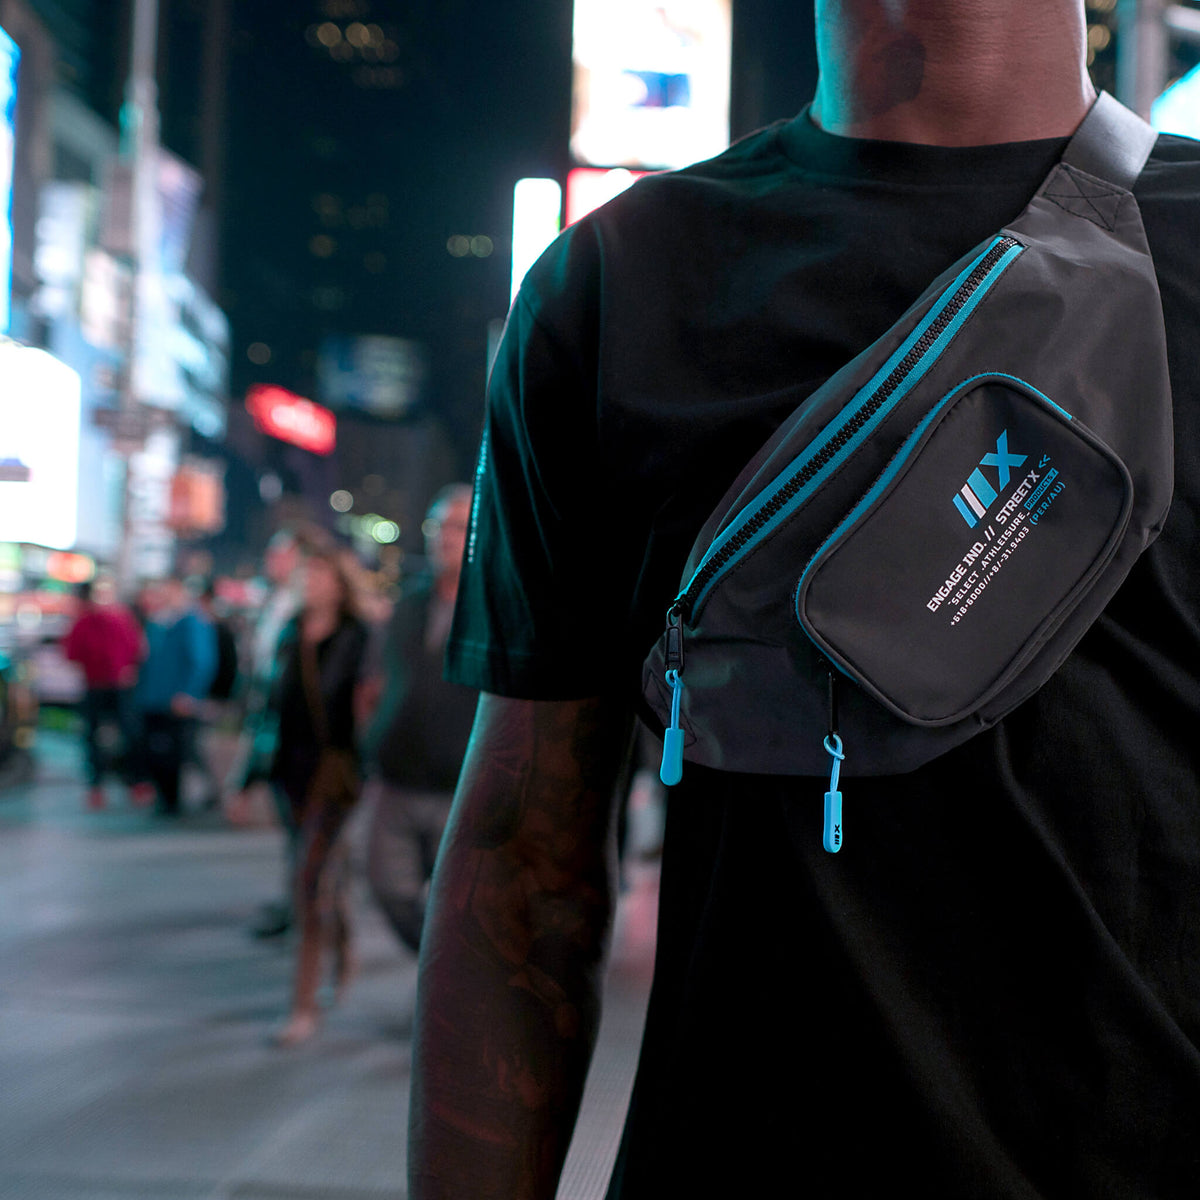 Engage x StreetX Reflective Waist Bag